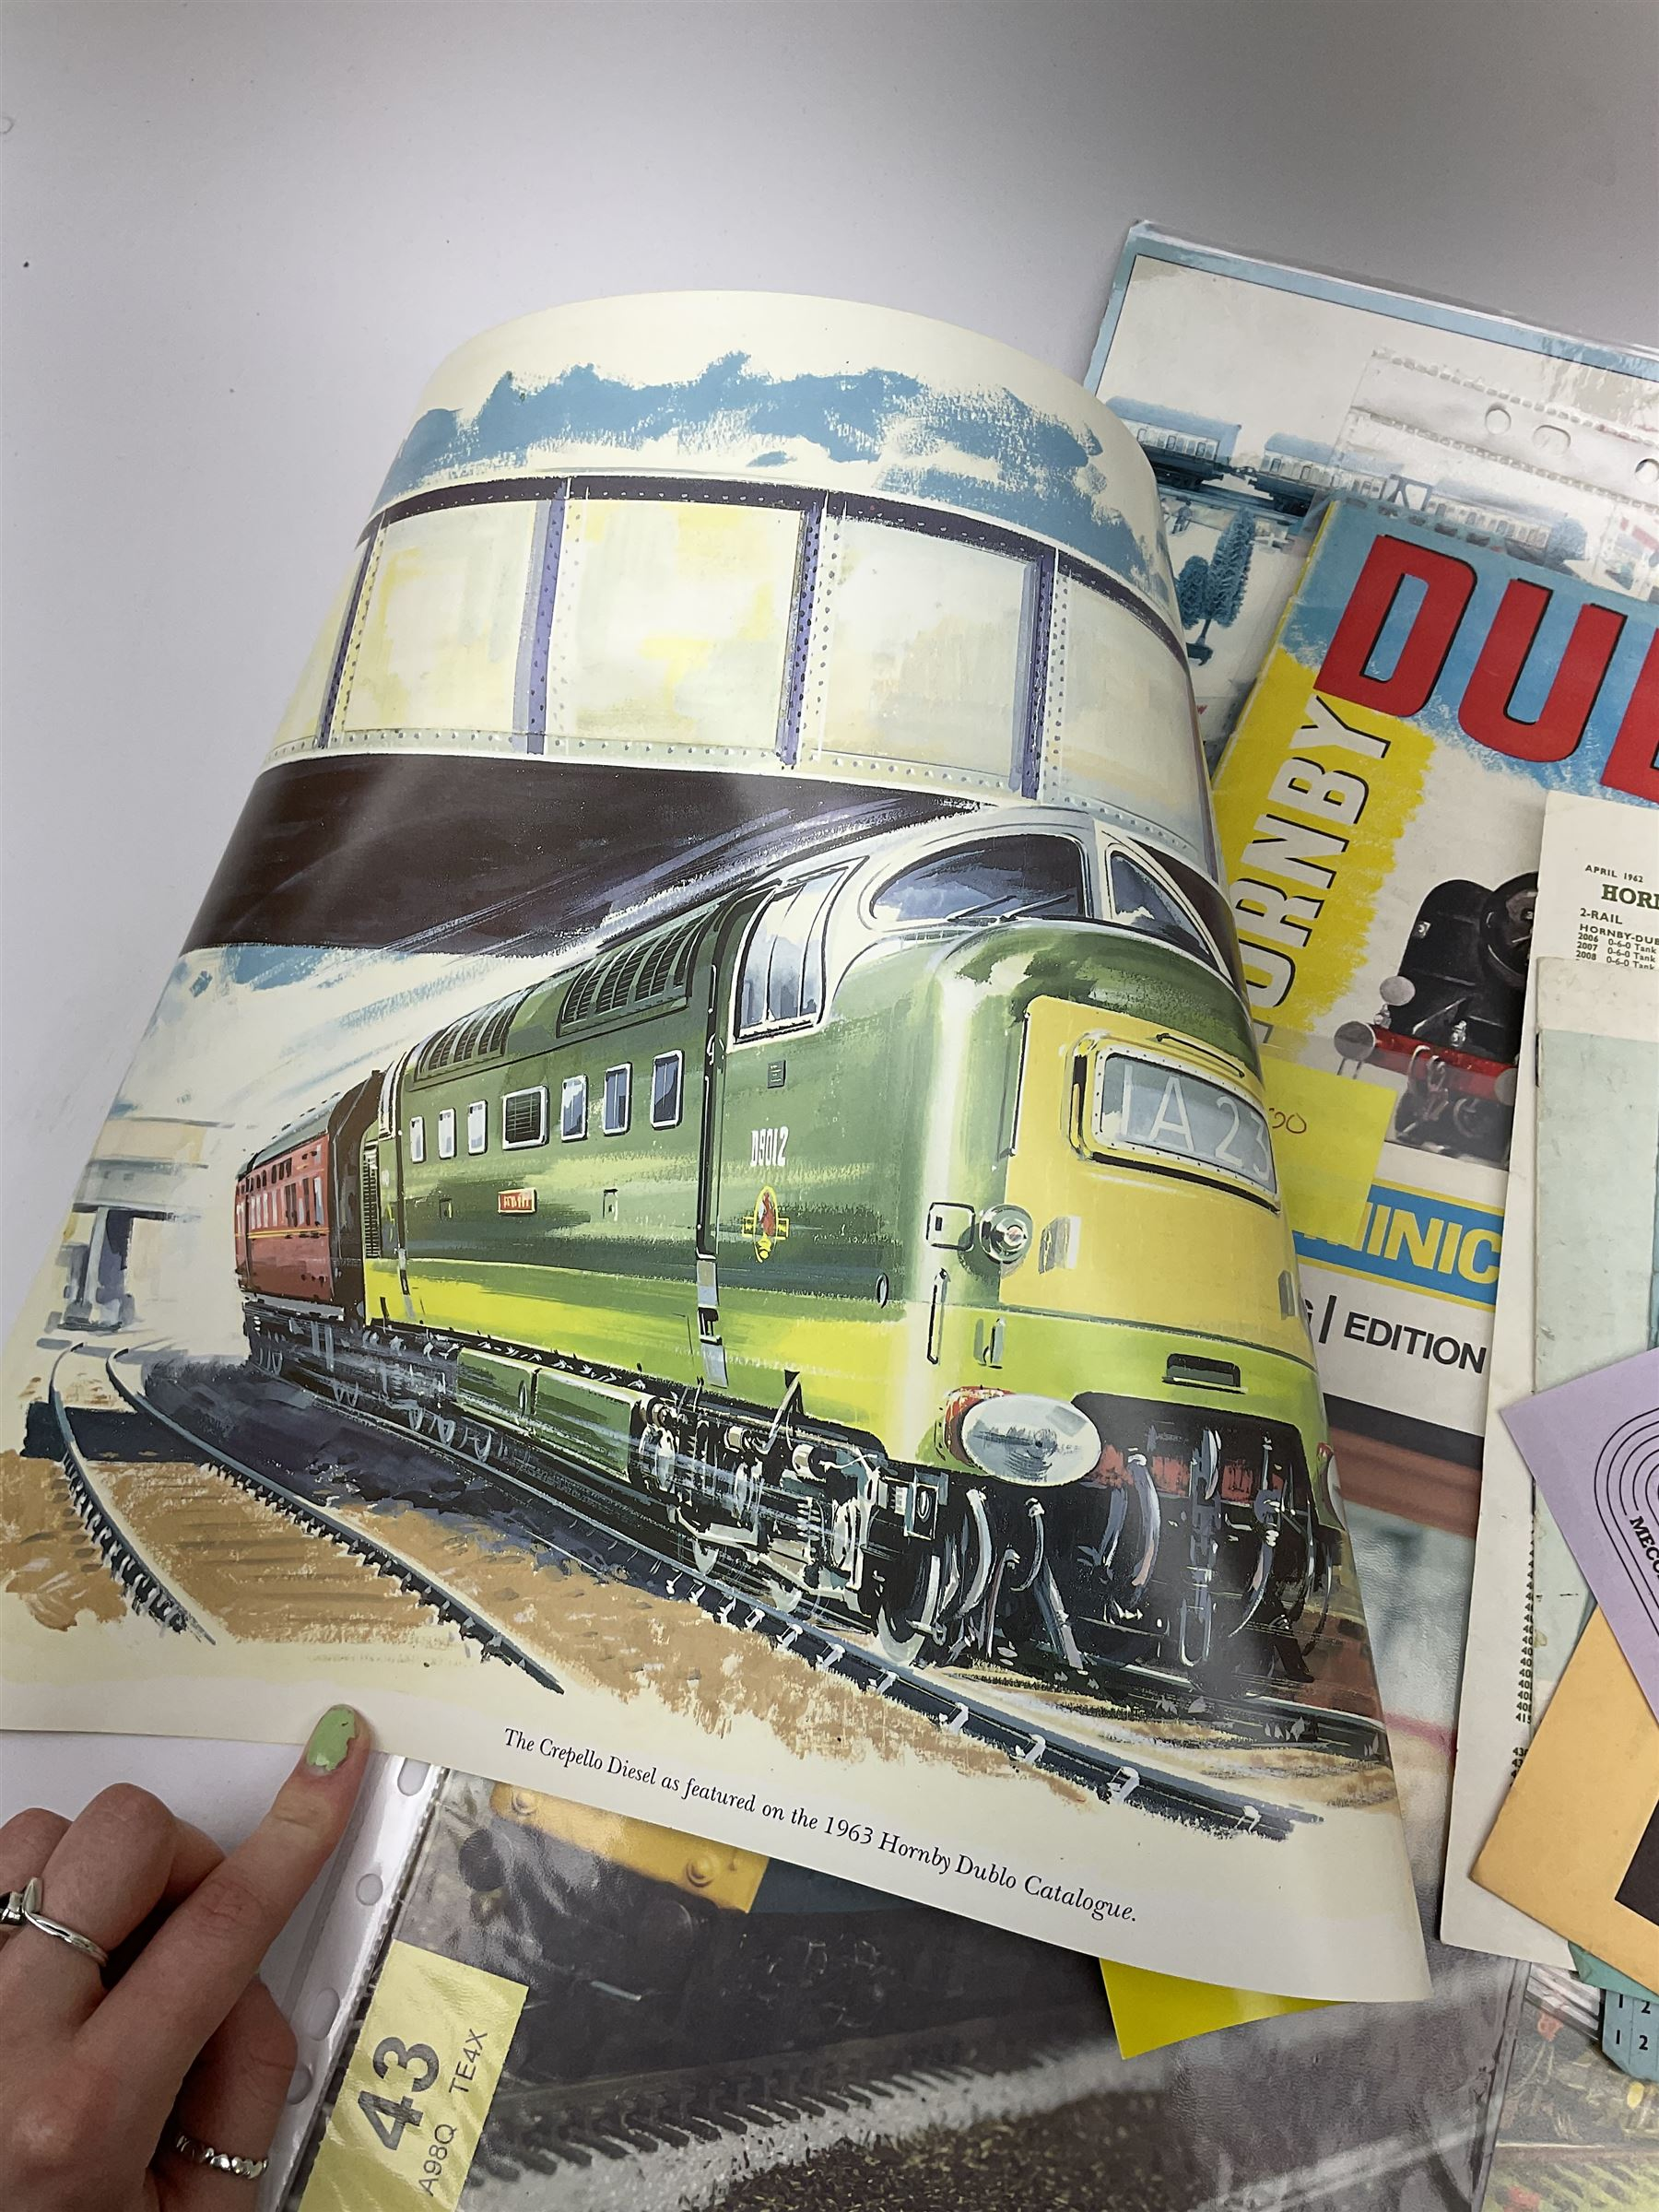 Hornby Dublo - quantity of paper ephemera including Electric Trains catalogues 1960 & 1961; Rail Lay - Image 4 of 9